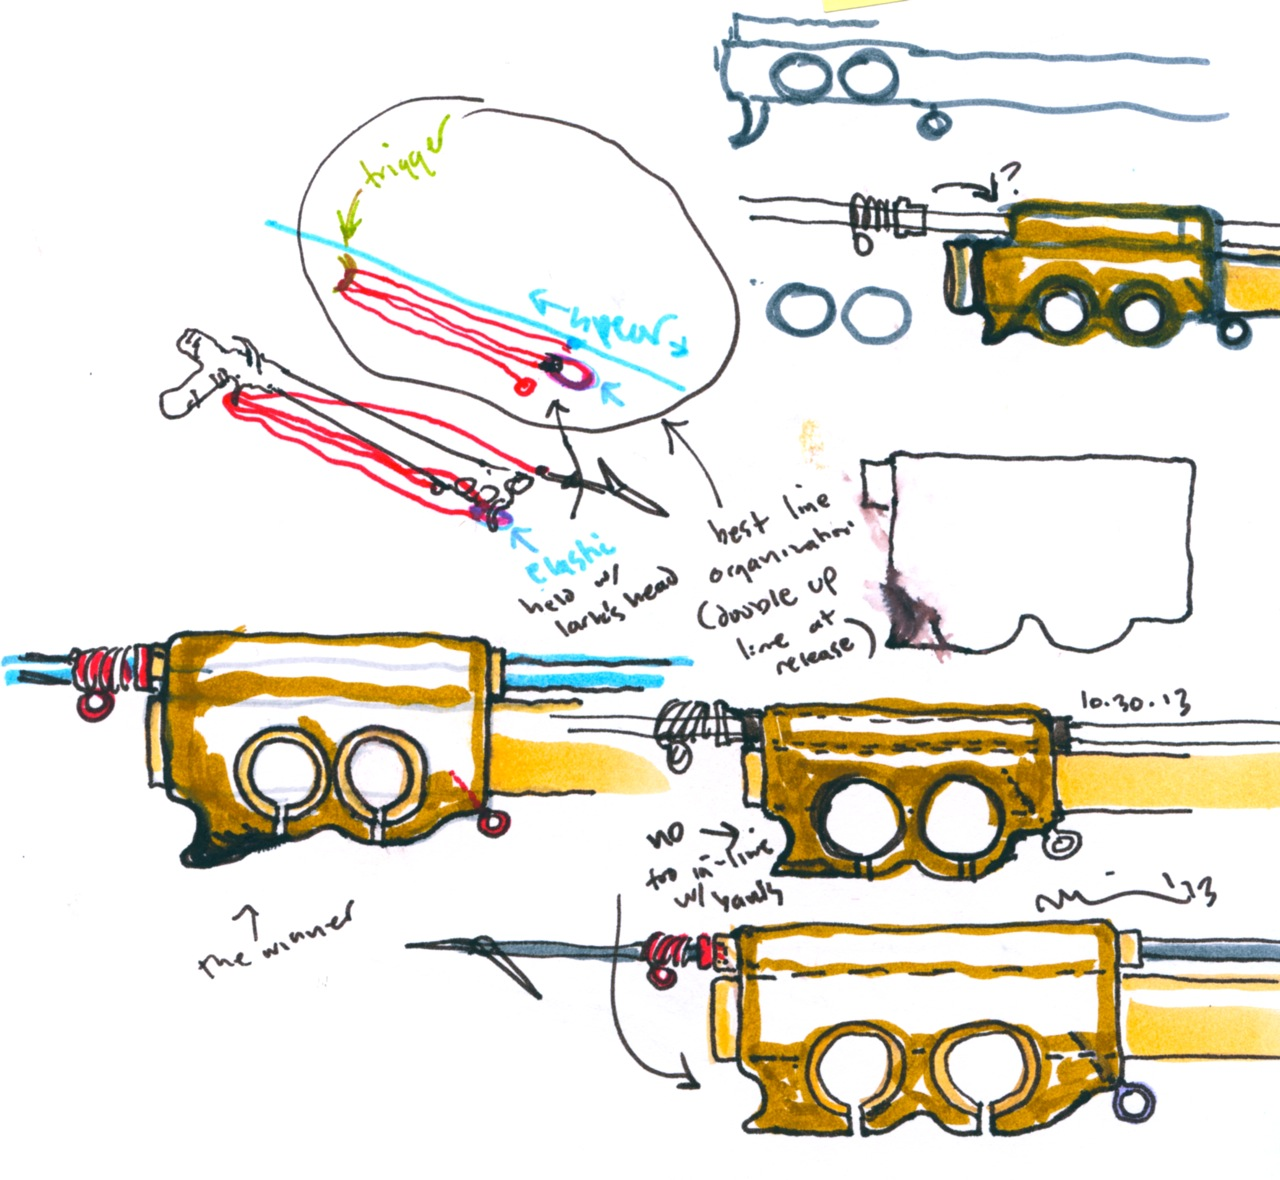 boo speargun asmbly 1.jpg